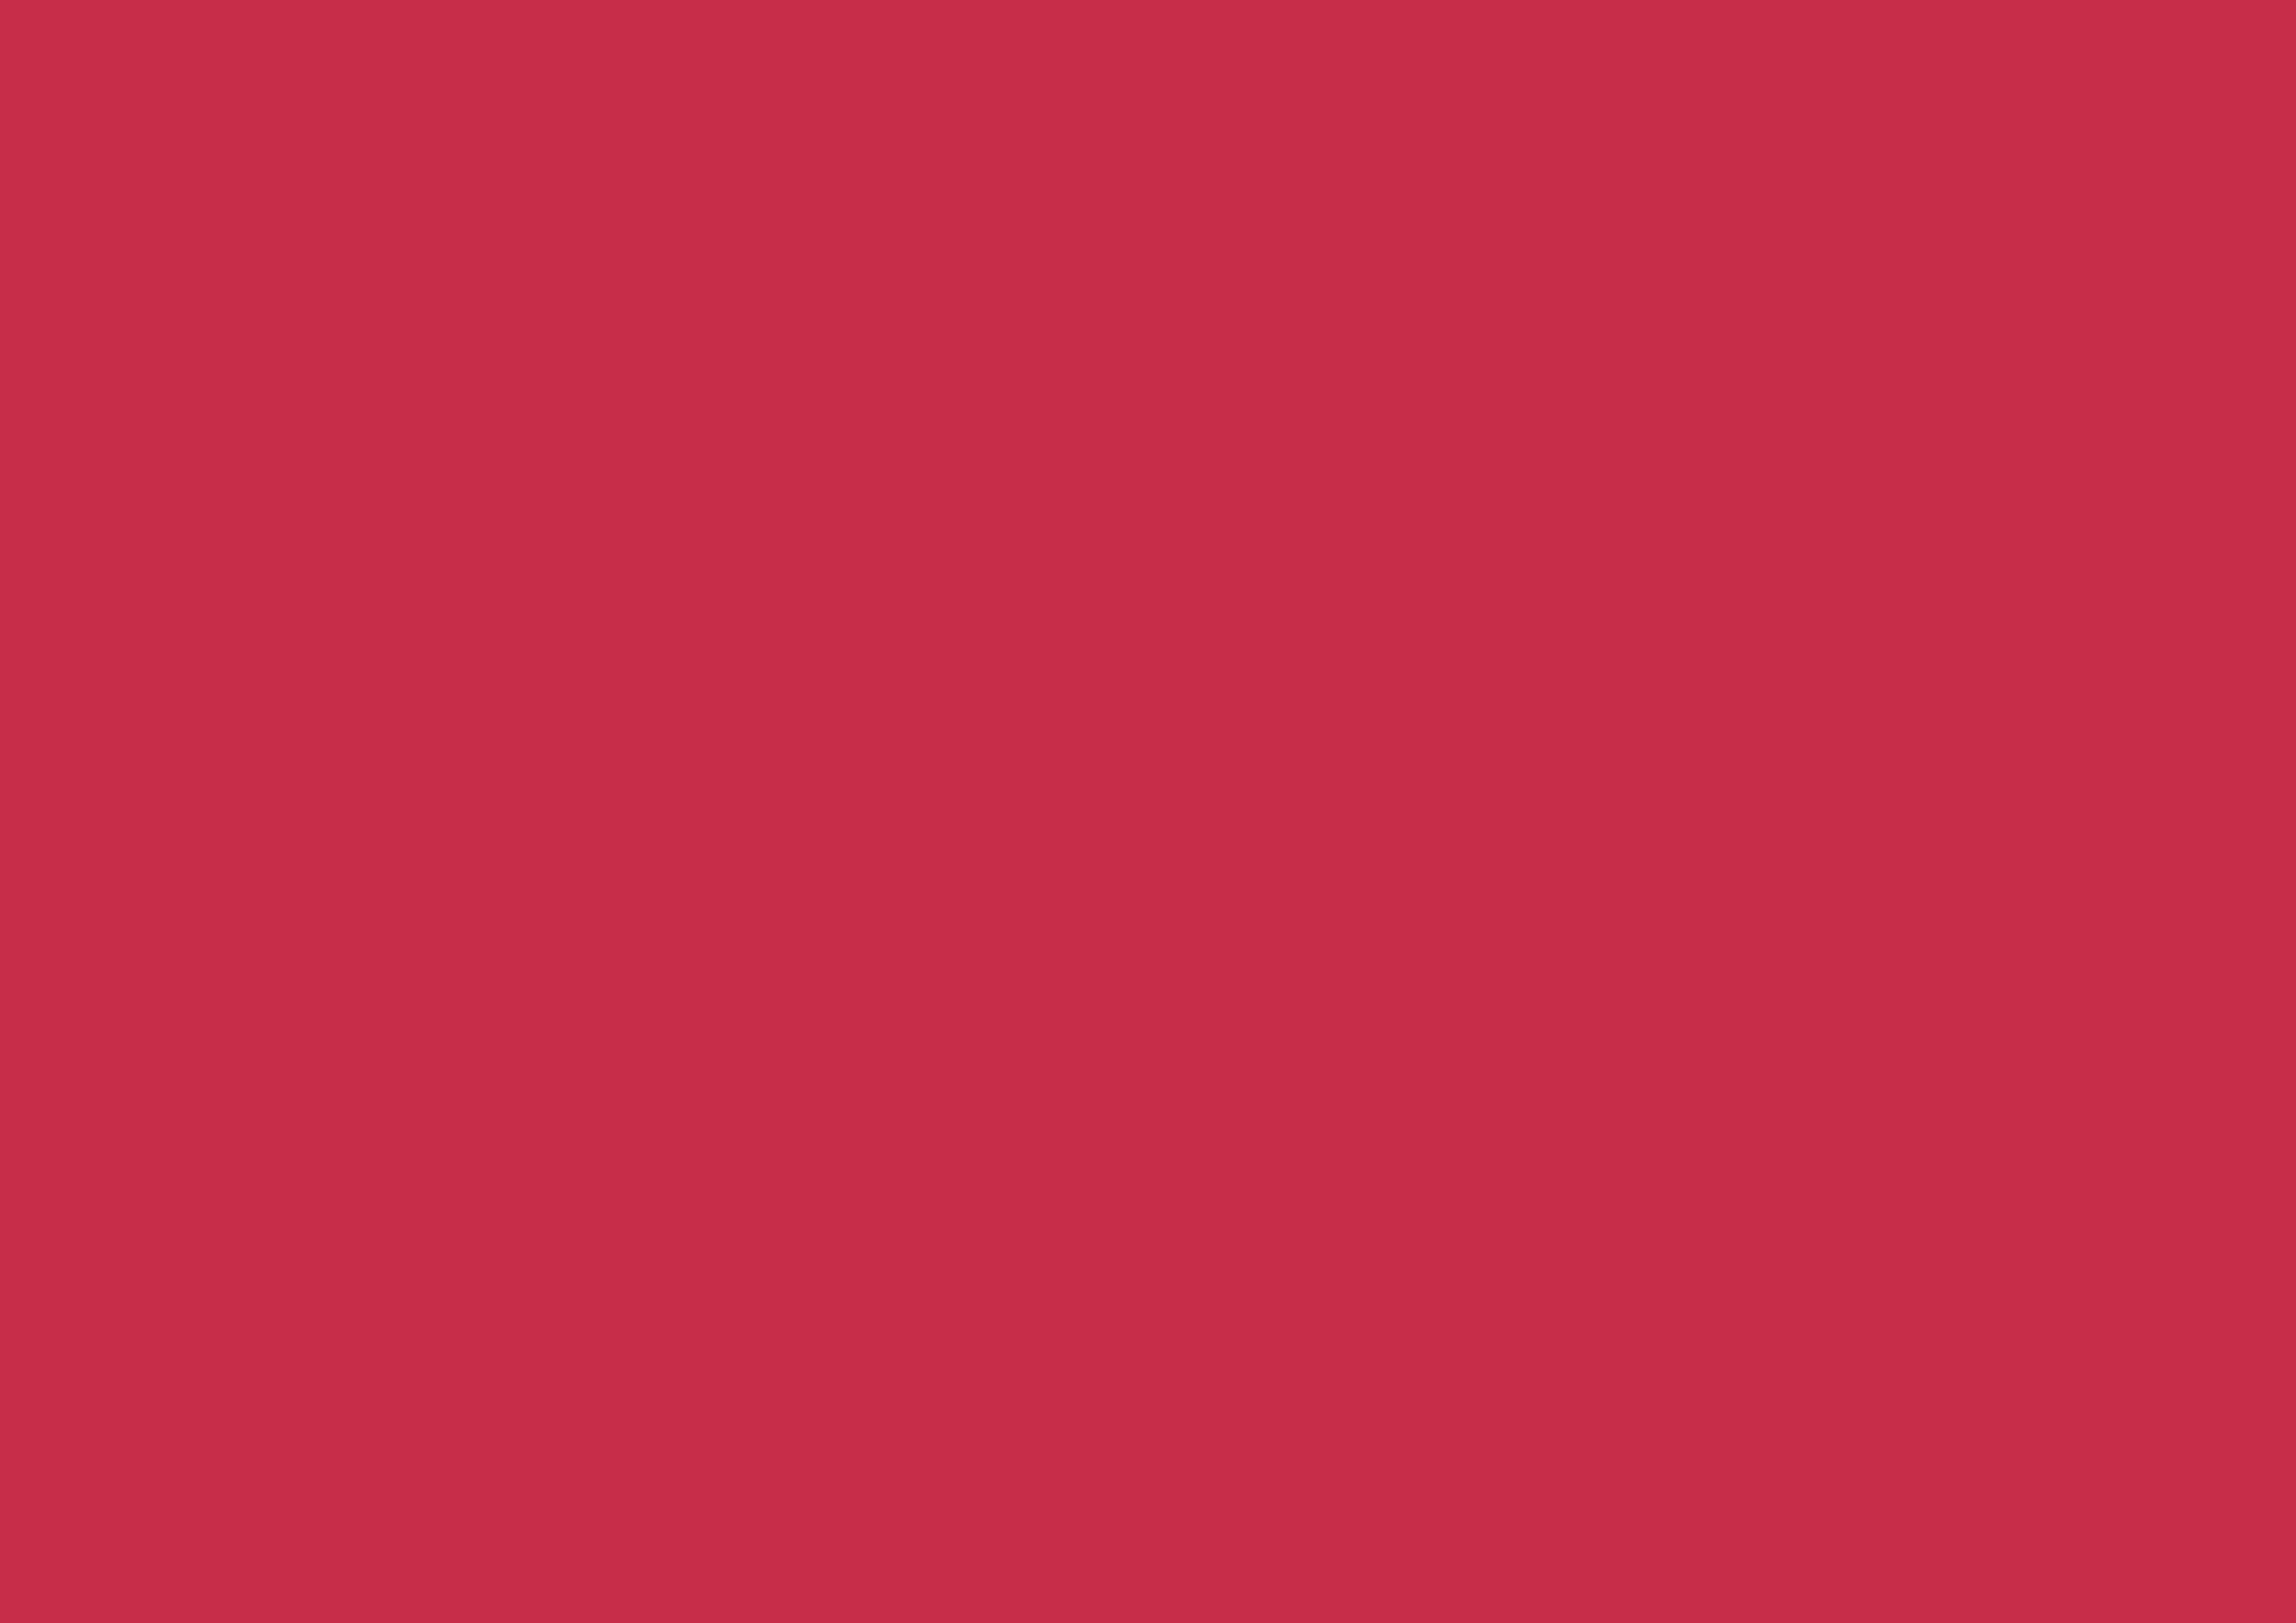 3508x2480 French Raspberry Solid Color Background